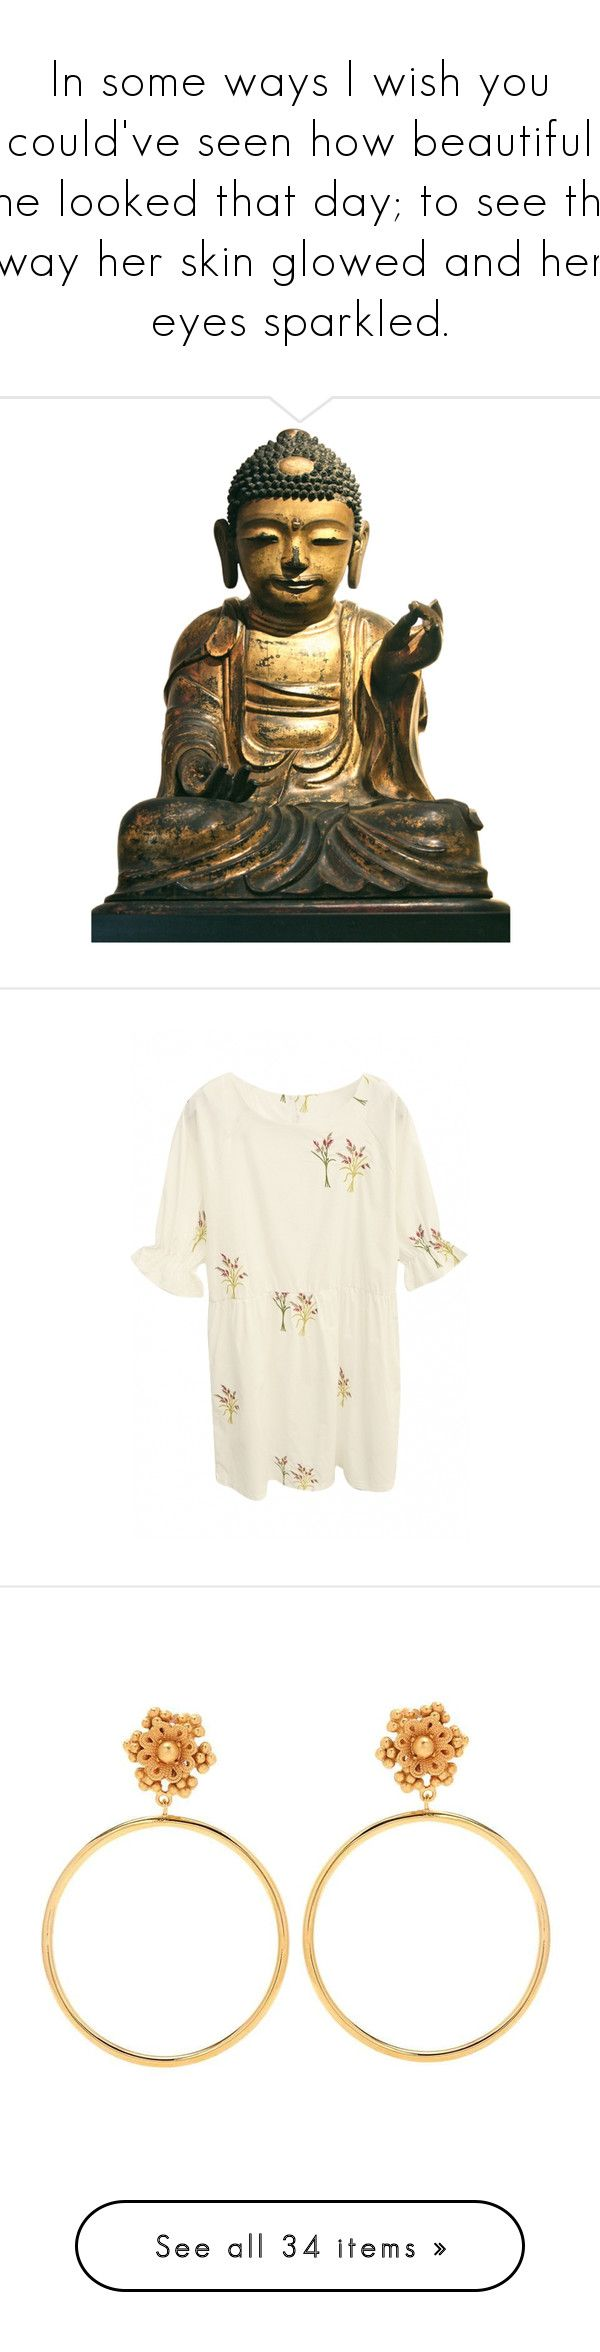 """In some ways I wish you could've seen how beautiful she looked that day; to see the way her skin glowed and her eyes sparkled."" by likedeadroses ❤ liked on Polyvore featuring home, home decor, fillers, buddha, decor, extras, buddha home decor, buddha figure, buddha figurines and dresses"